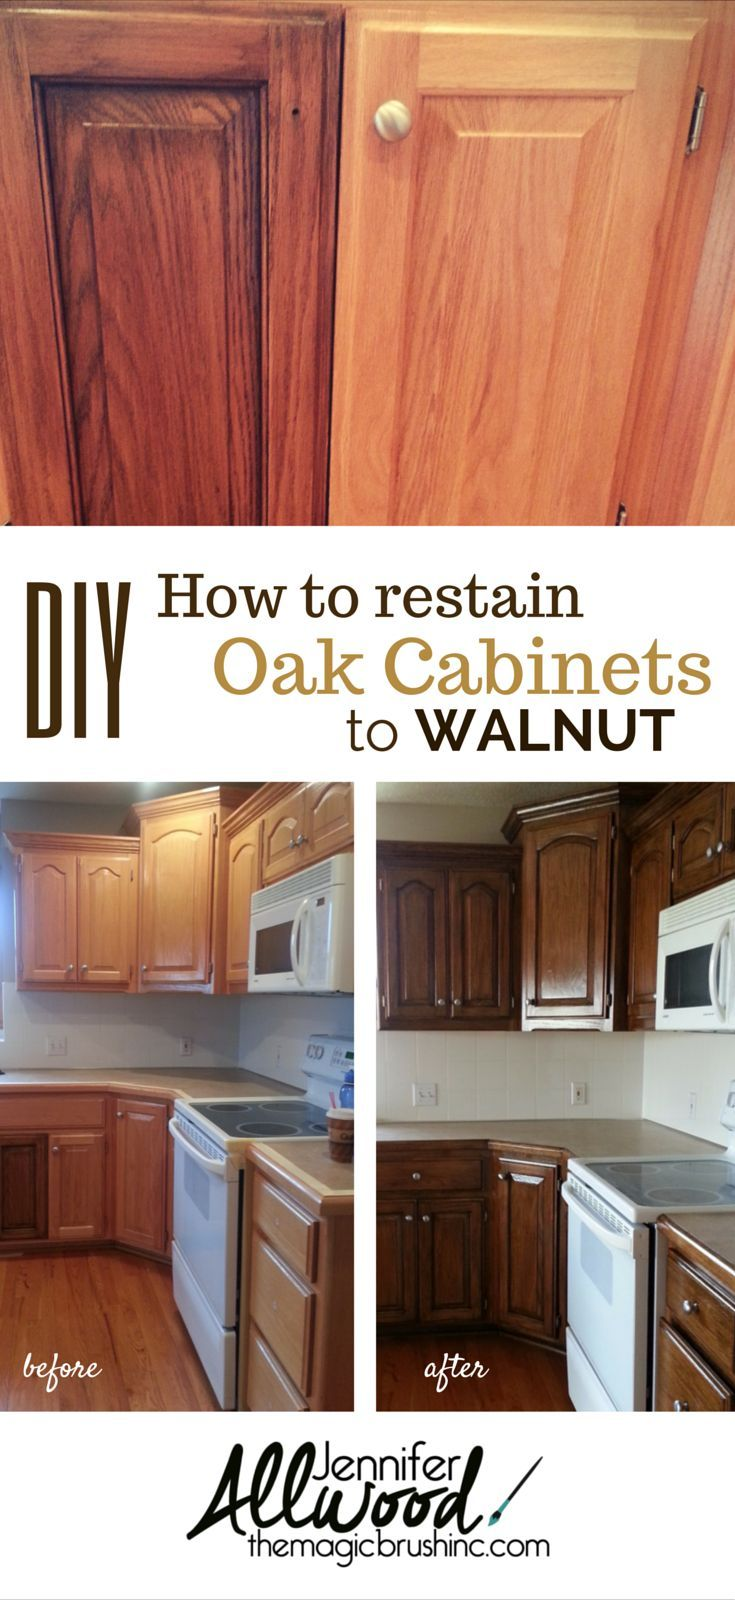 staining kitchen cabinets Cabinets and Furniture Finishes